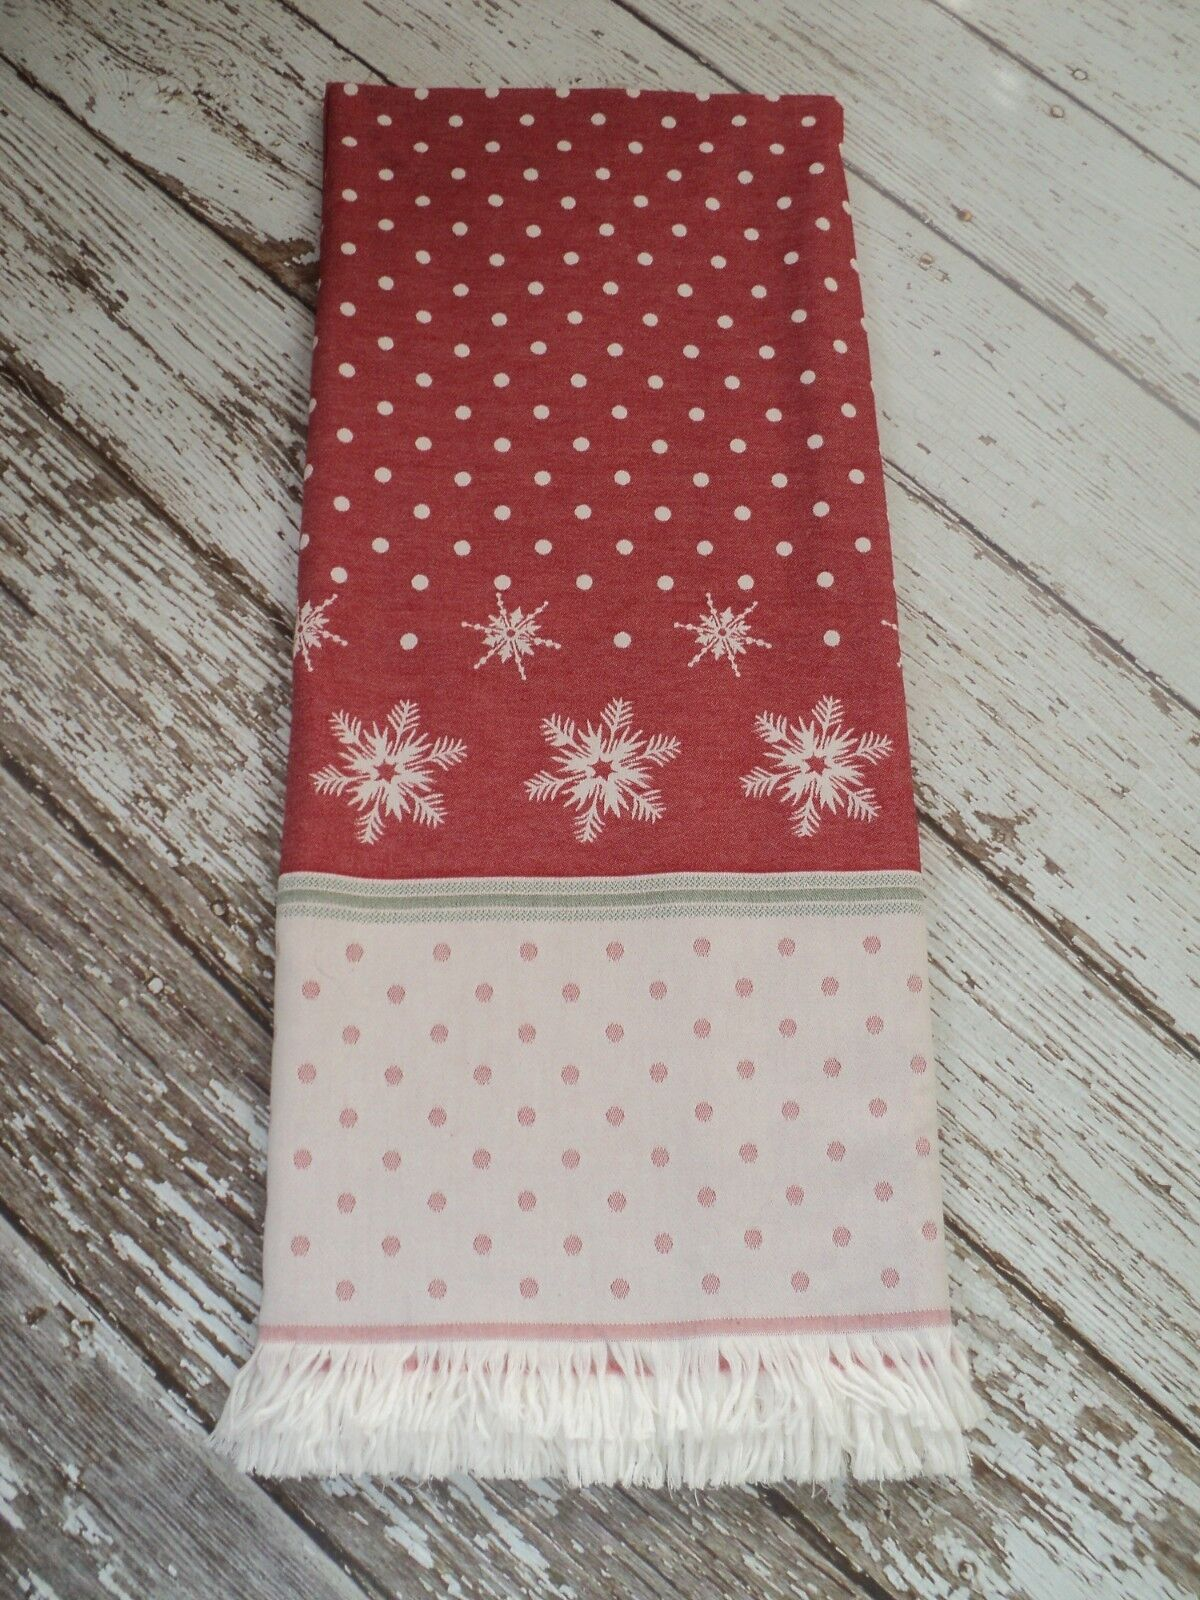 MUNDU Luxury MADE IN PORTUGAL Throw Blanket Cotton Snowflakes Christmas Red